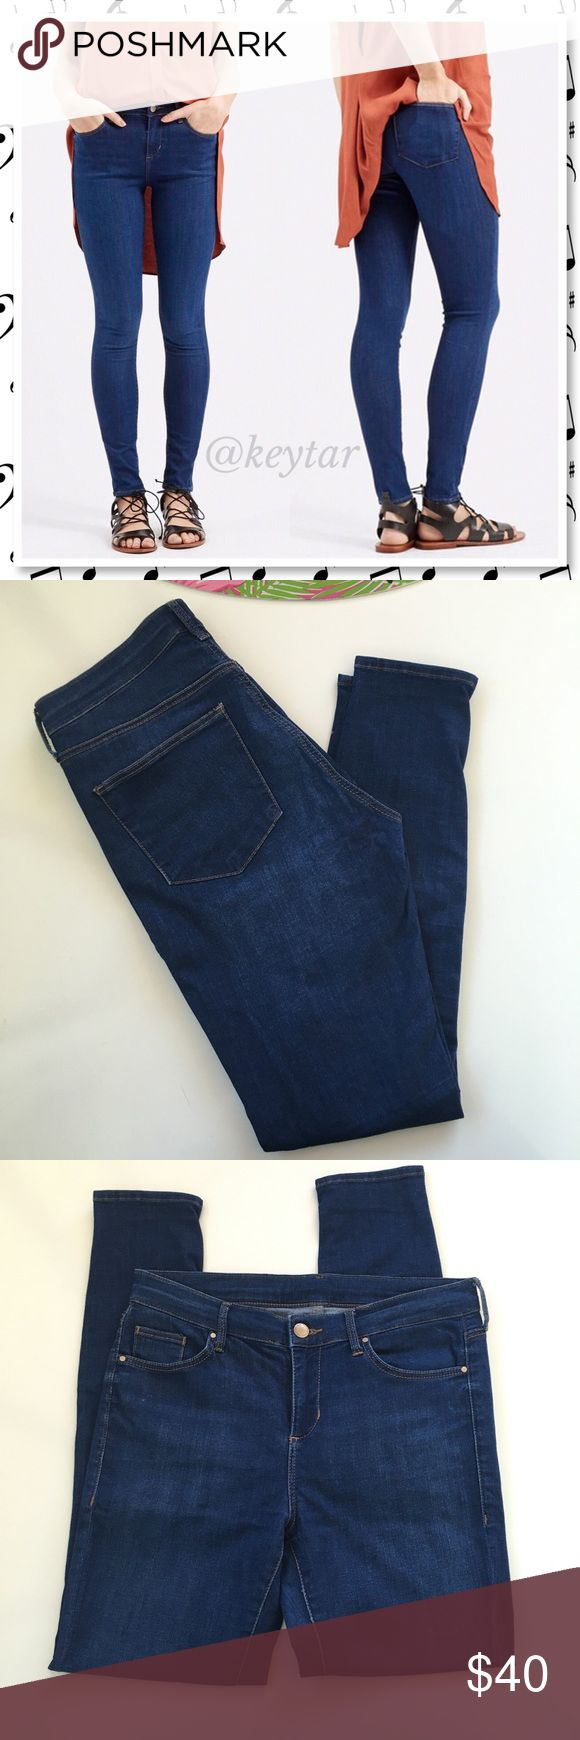 """Topshop MOTO Leigh Ankle Skinny Jeans Moto ankle skinny jeans from Topshop. A brilliant bright blue wash and body conscious silhouette define ankle grazing jeans highlighted with contrasting top stitching. Zip fly with button closure, 5 pocket style with a mid rise. Size 28 best fits a US size 27. Super comfortable stretch is almost like a second skin. You will not want to take these off! Questions? Ask!  ⚡️waist 14.5"""" (flat) 26"""" inseam (ankle) 9"""" rise ❌ trades ❌ lowballs 👍offer button…"""